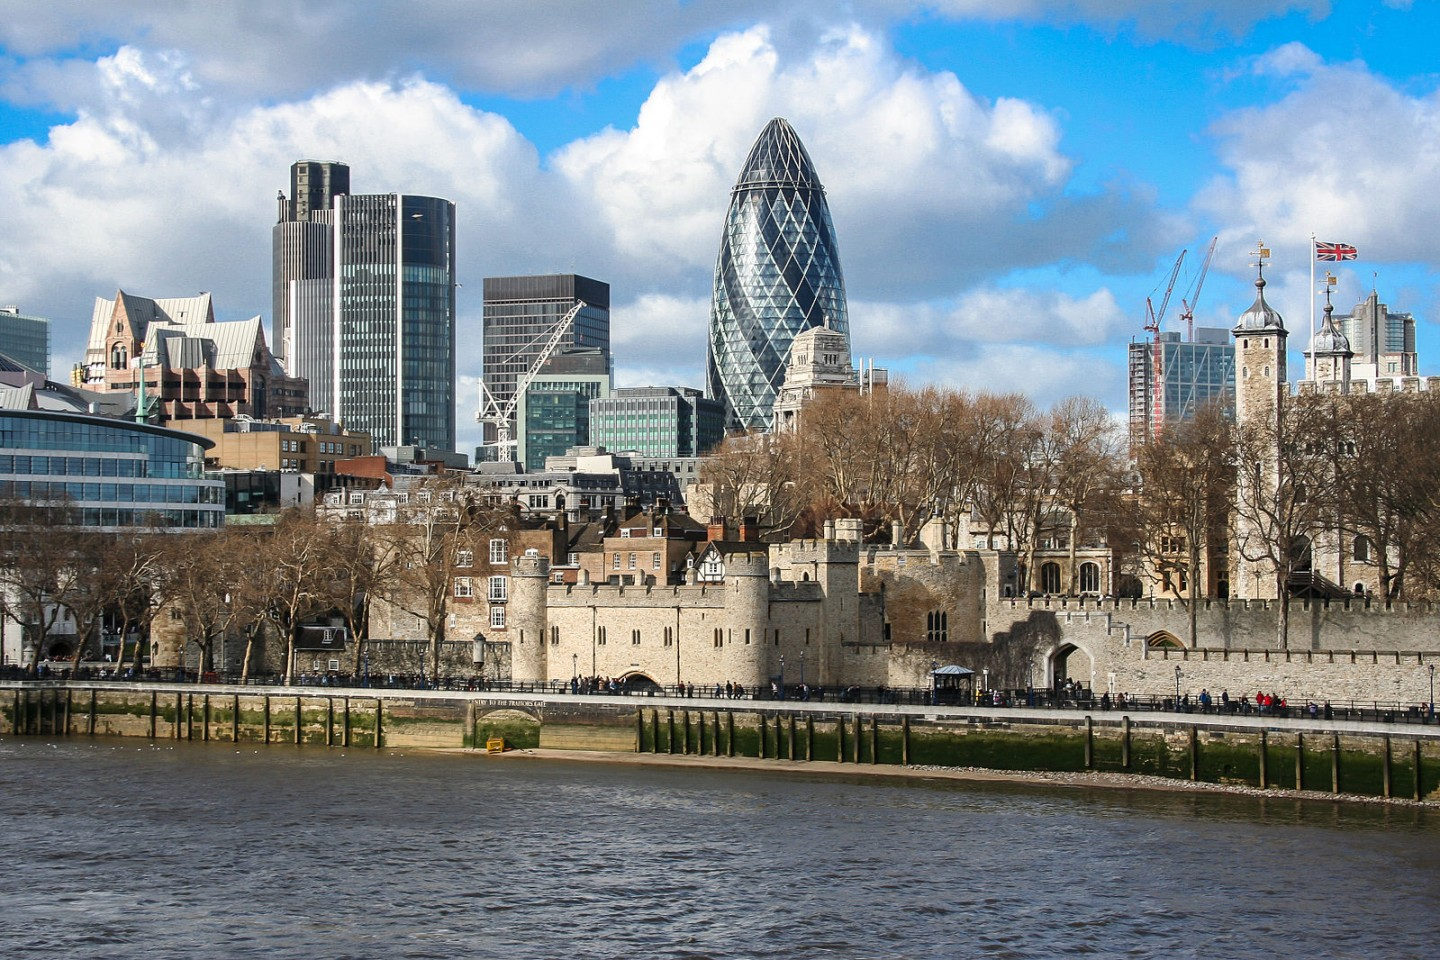 City_of_London_Tower_of_London_and_30_St_Mary_Axe_view_from_Tower_bridge